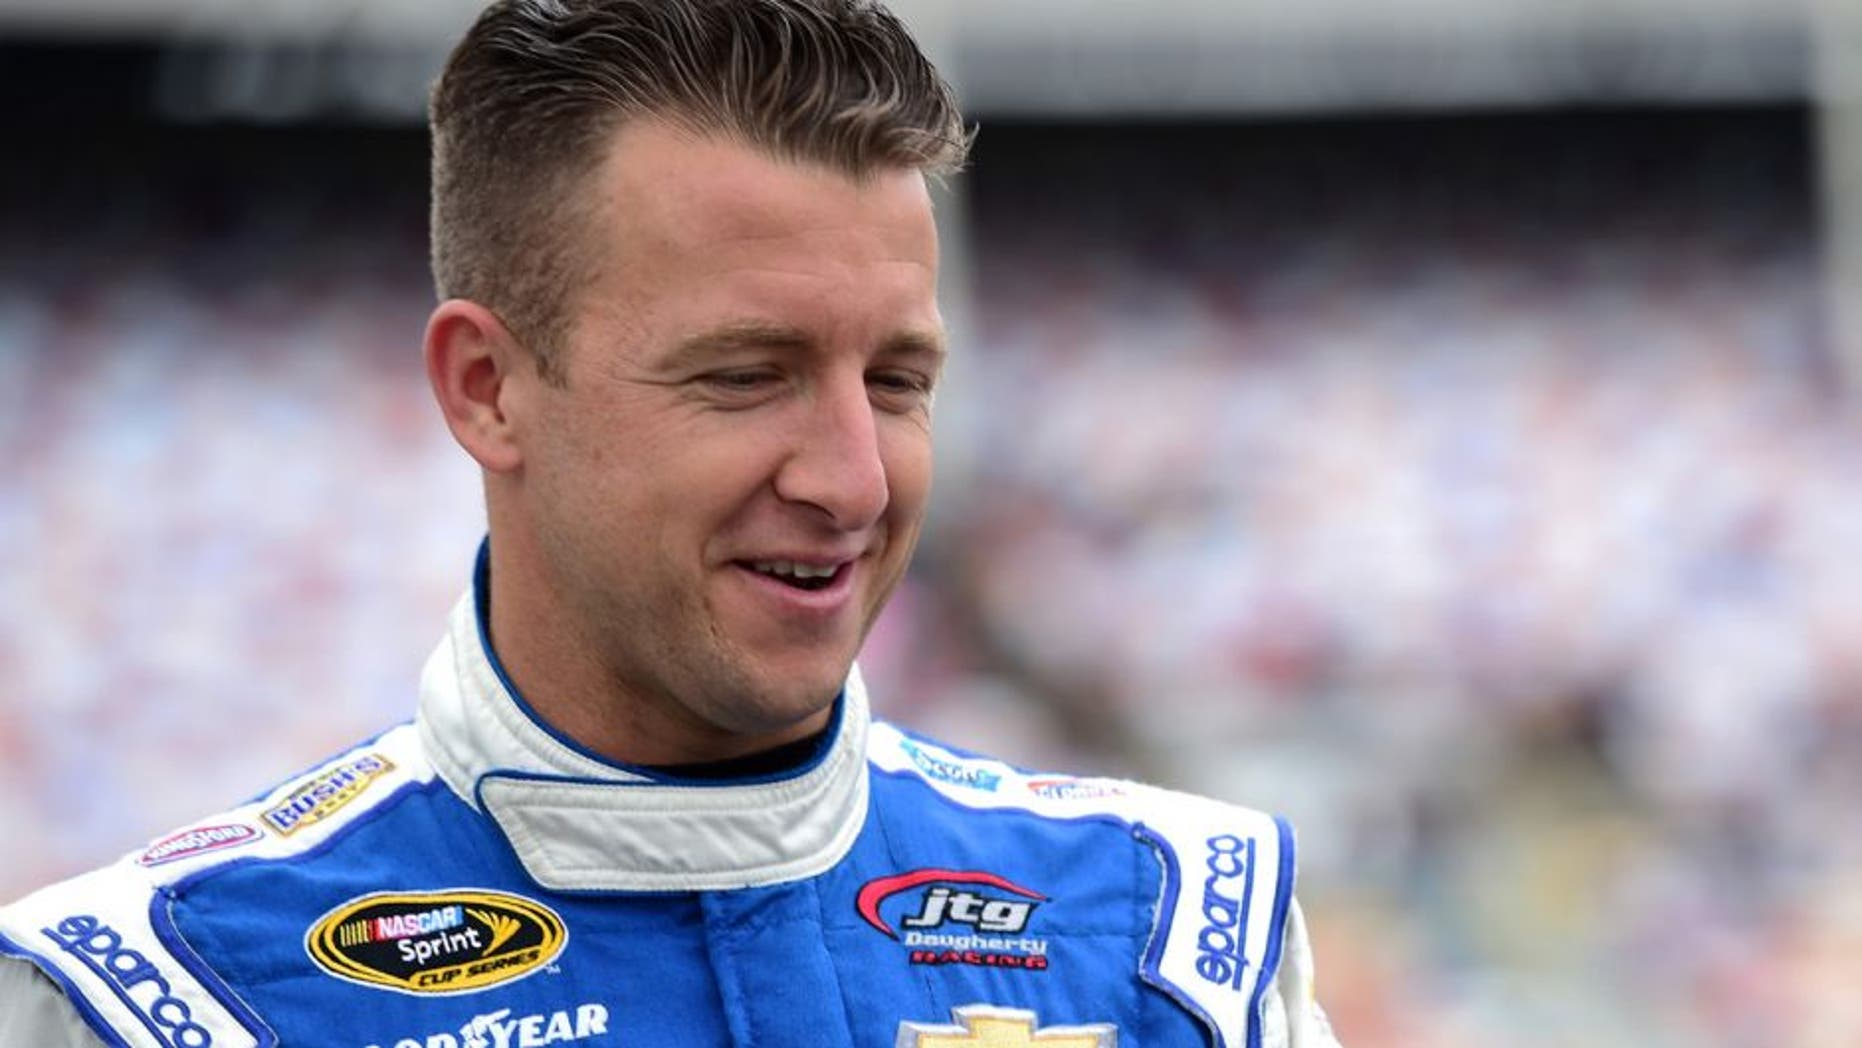 CHARLOTTE, NC - MAY 21: AJ Allmendinger, driver of the #47 Uwharrie Bank Chevrolet, walks on the grid during the NASCAR Sprint Cup Series Sprint Showdown at Charlotte Motor Speedway on May 21, 2016 in Charlotte, North Carolina. (Photo by Jared C. Tilton/Getty Images)